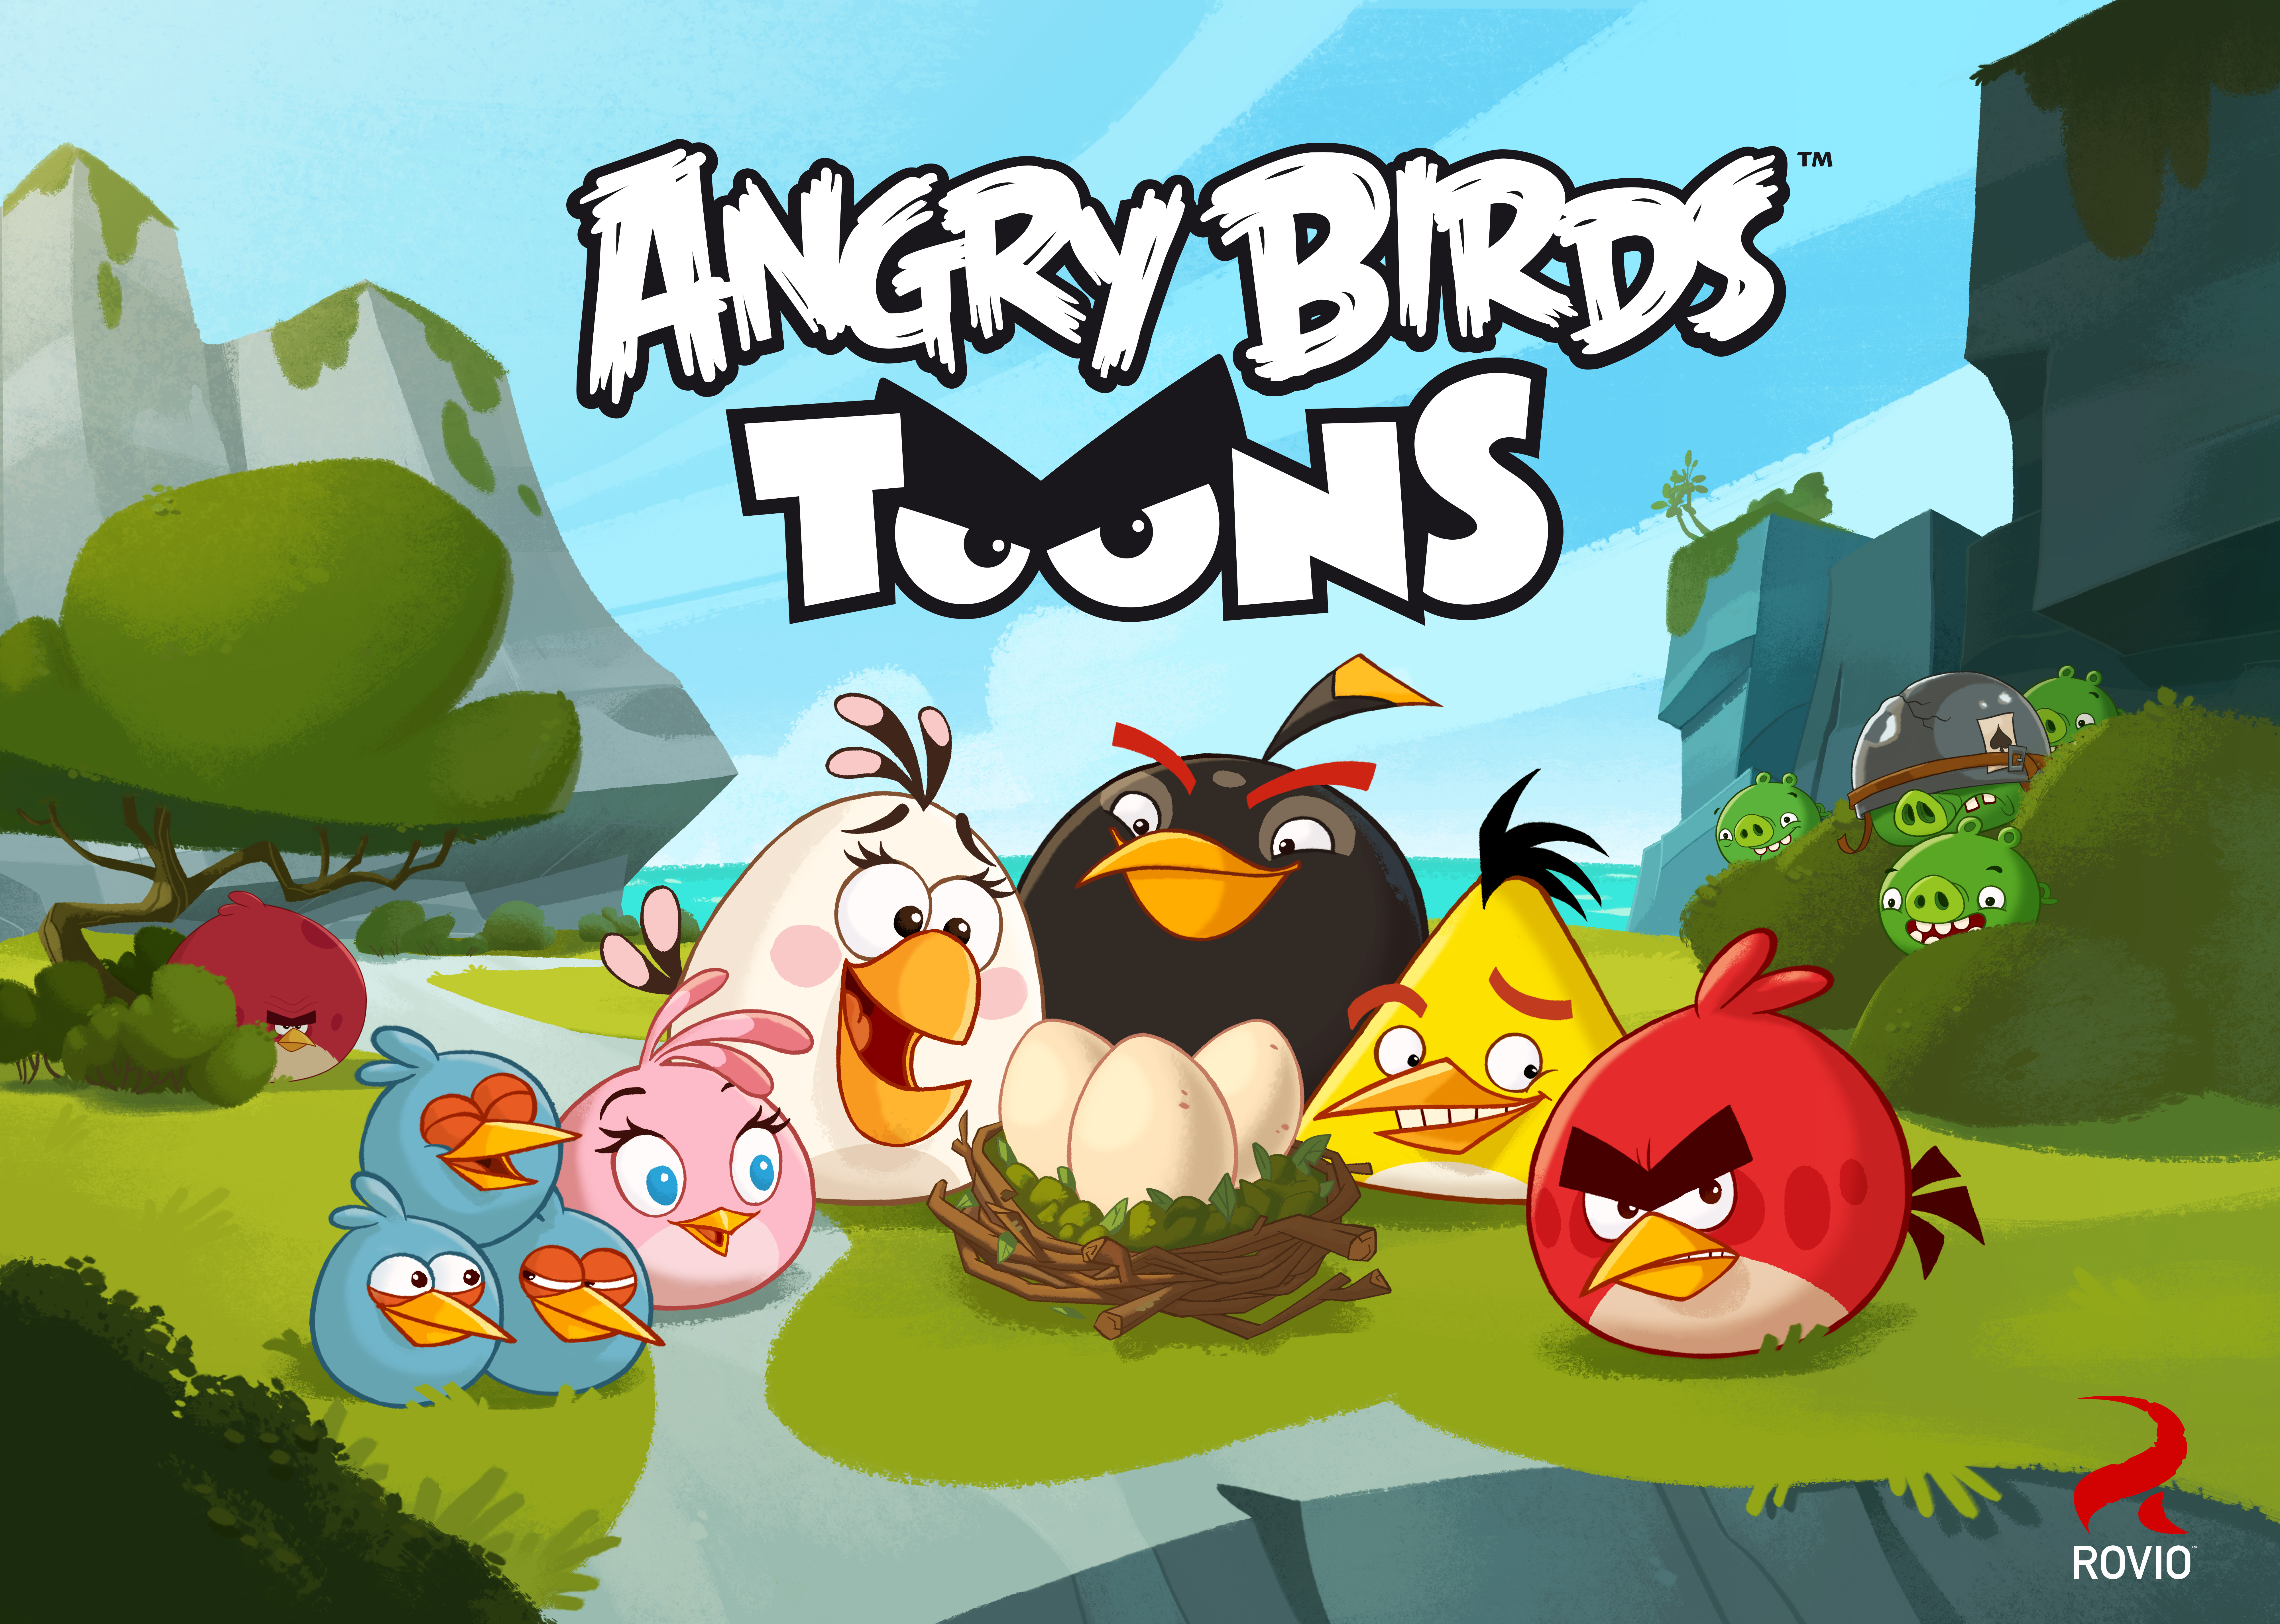 ultra hd]angry birds toons[teaser picture]nikitabirds on deviantart